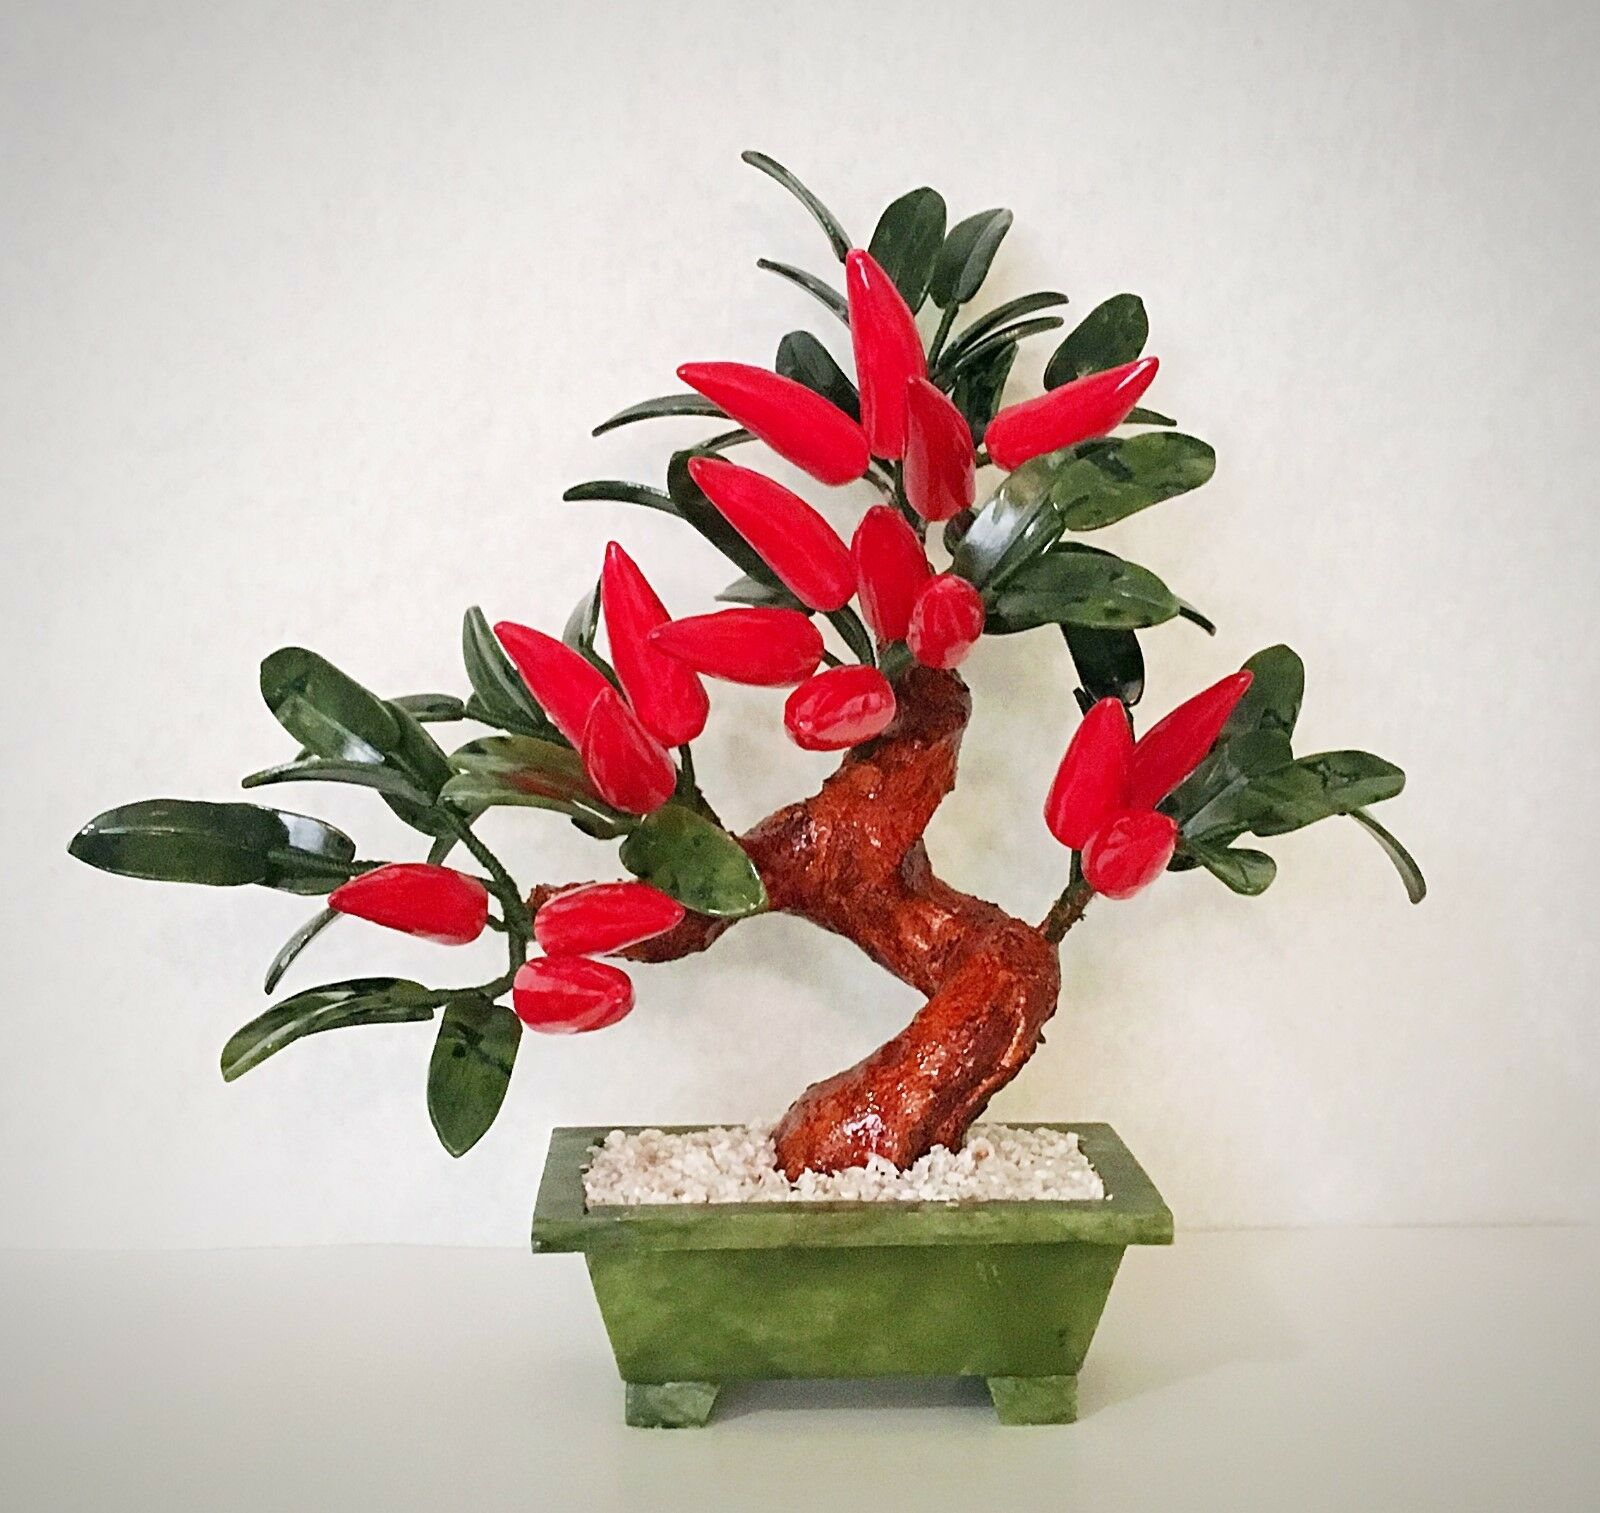 Handcrafted Jade and Glass Artificial rot Pepper Bonsai Tree Plant Basket